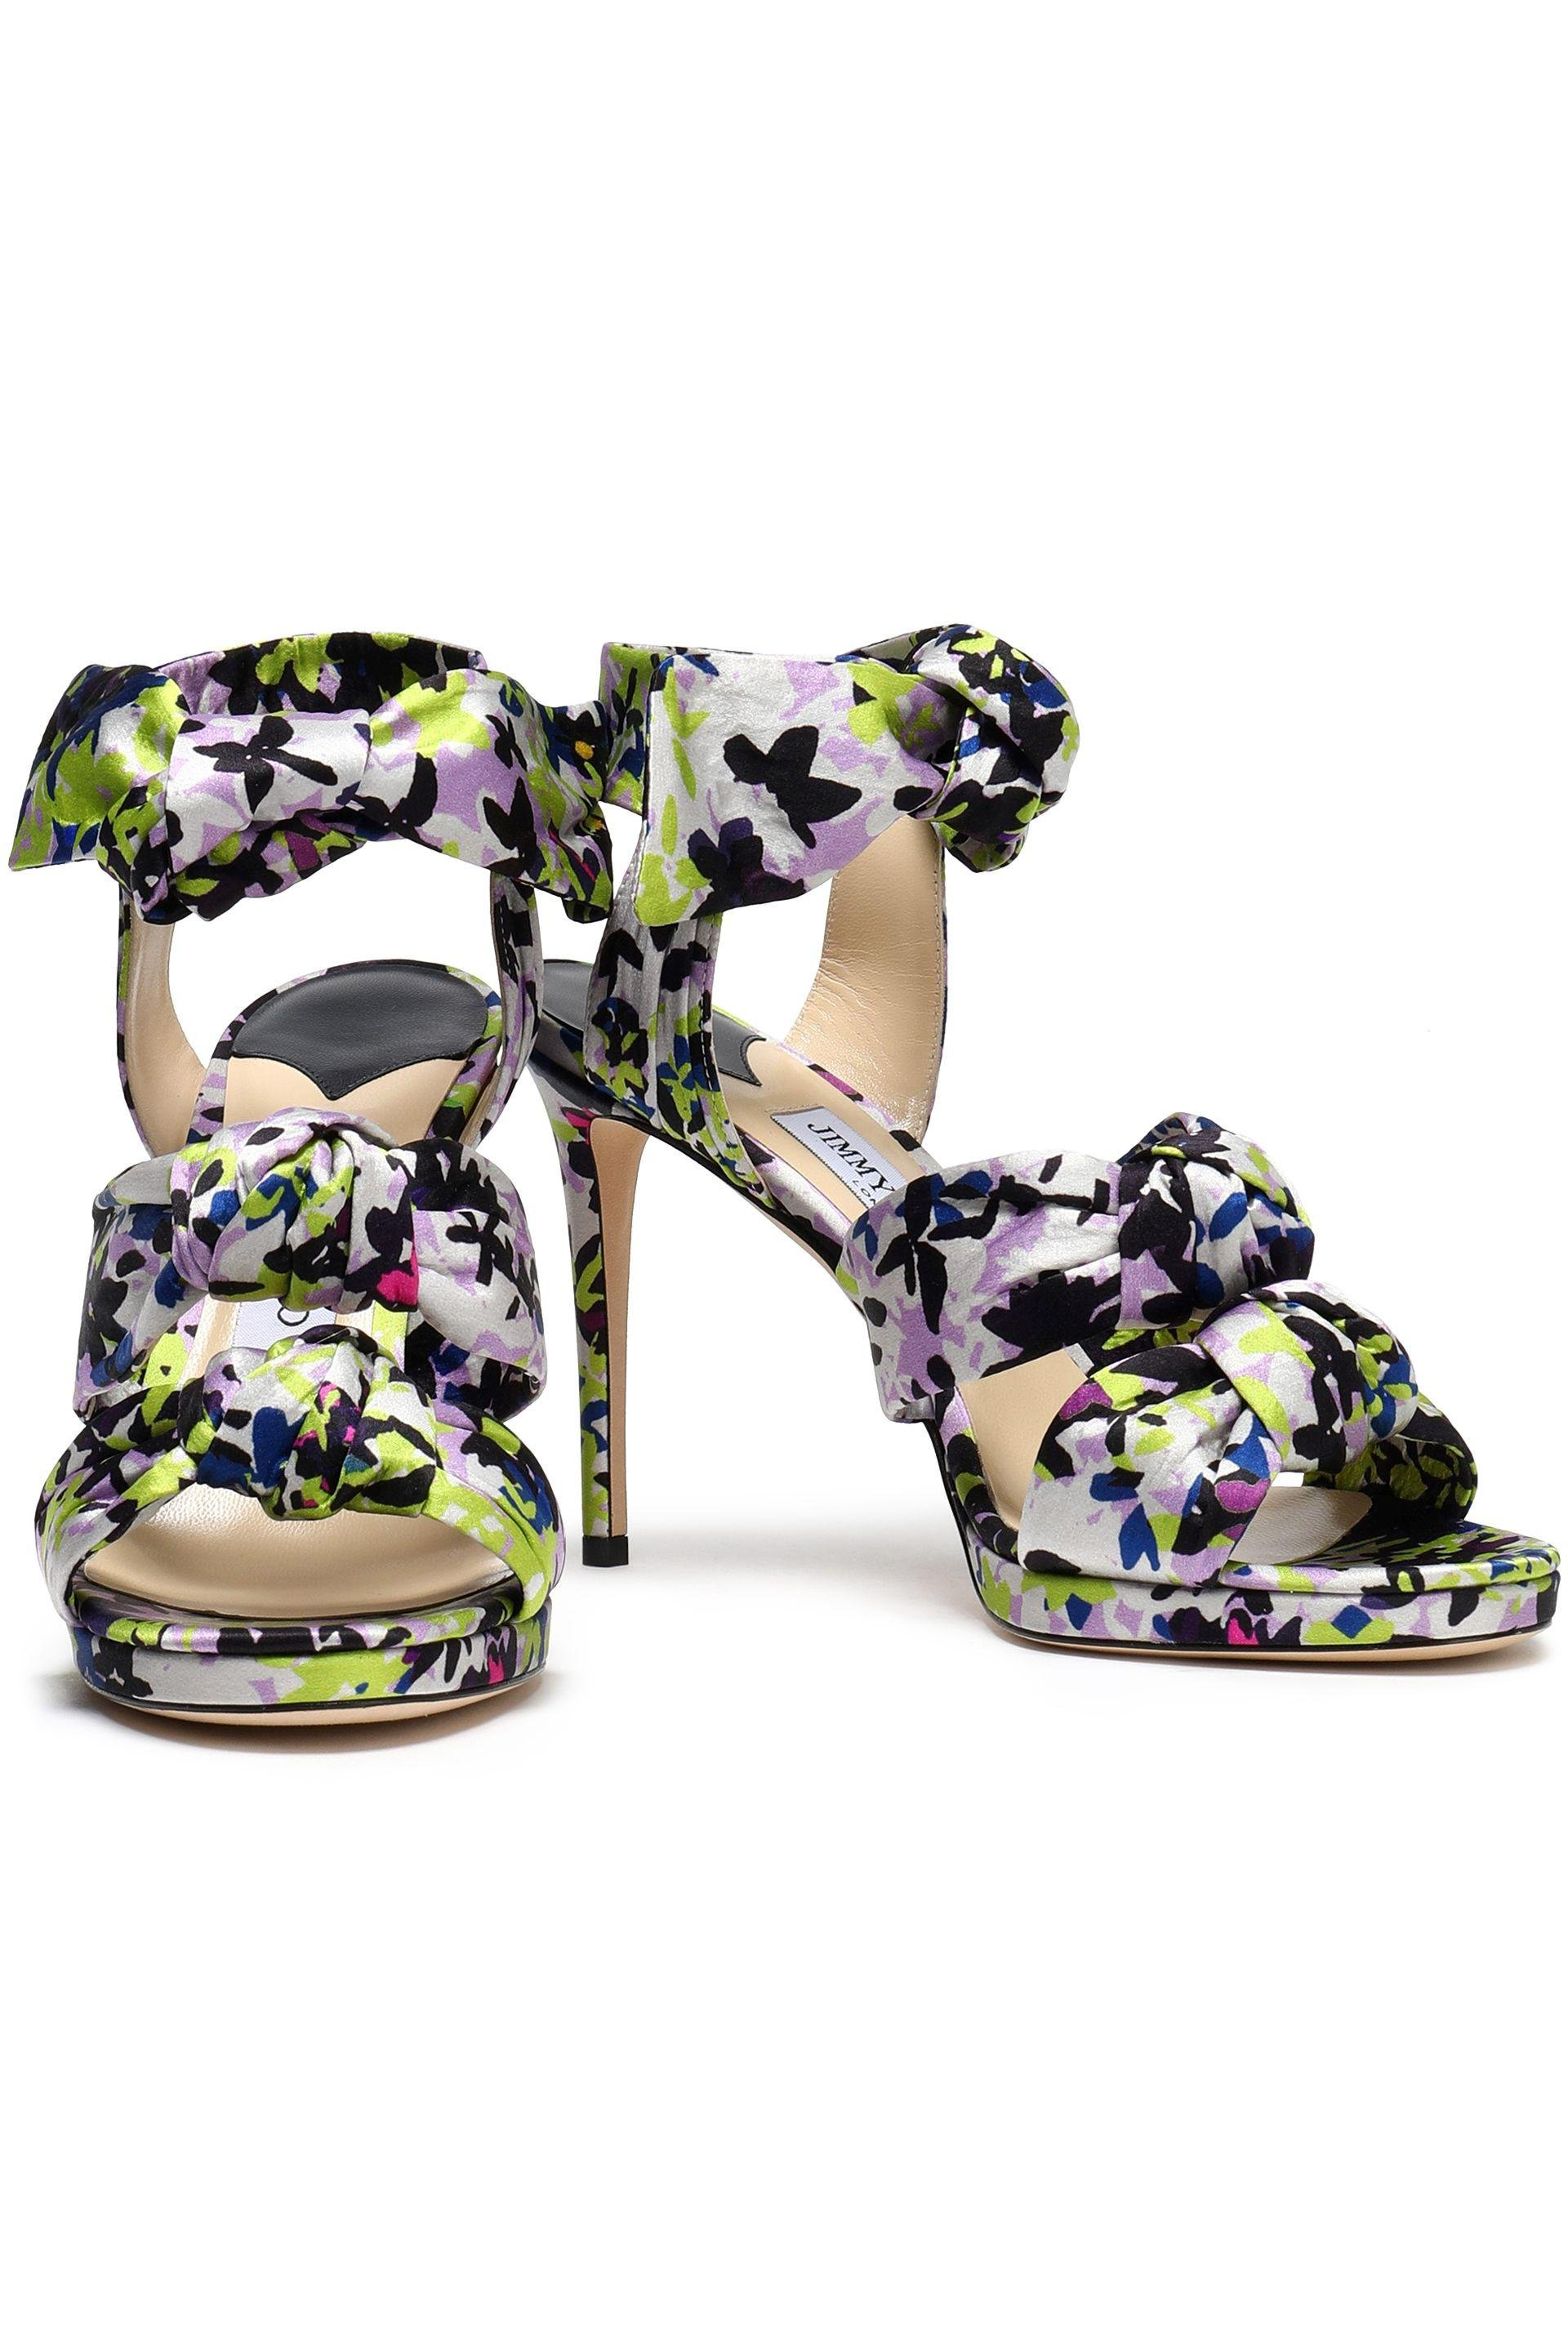 c95118687ee2ac Jimmy Choo Kris Knotted Printed Satin Sandals Lime Green in Green - Lyst